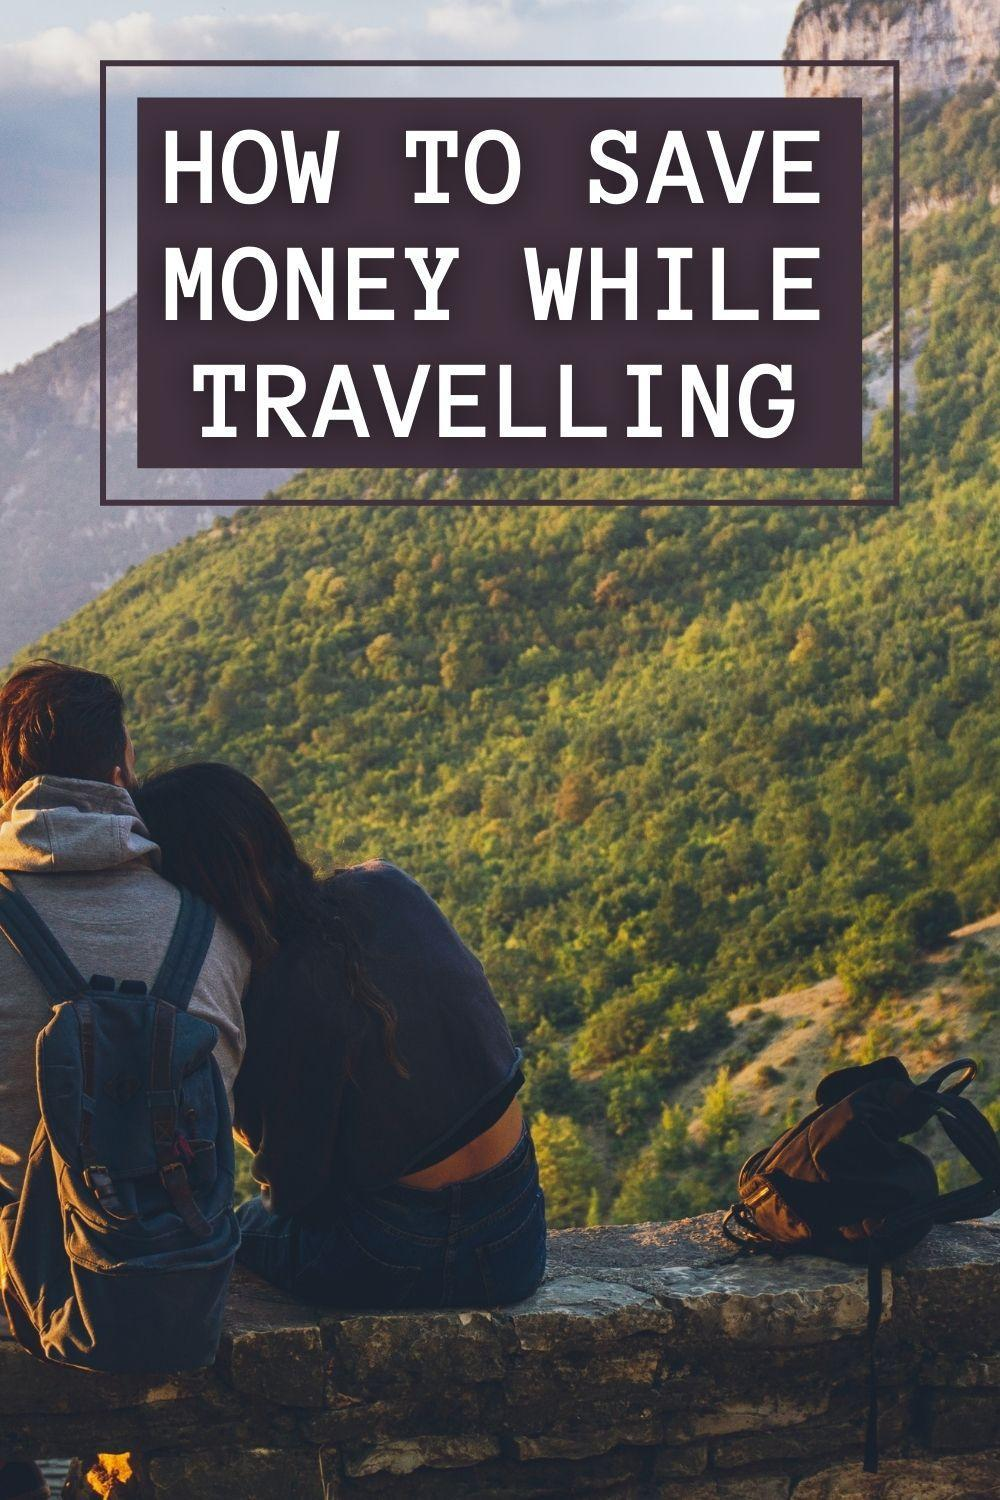 How To Save Money While Travelling